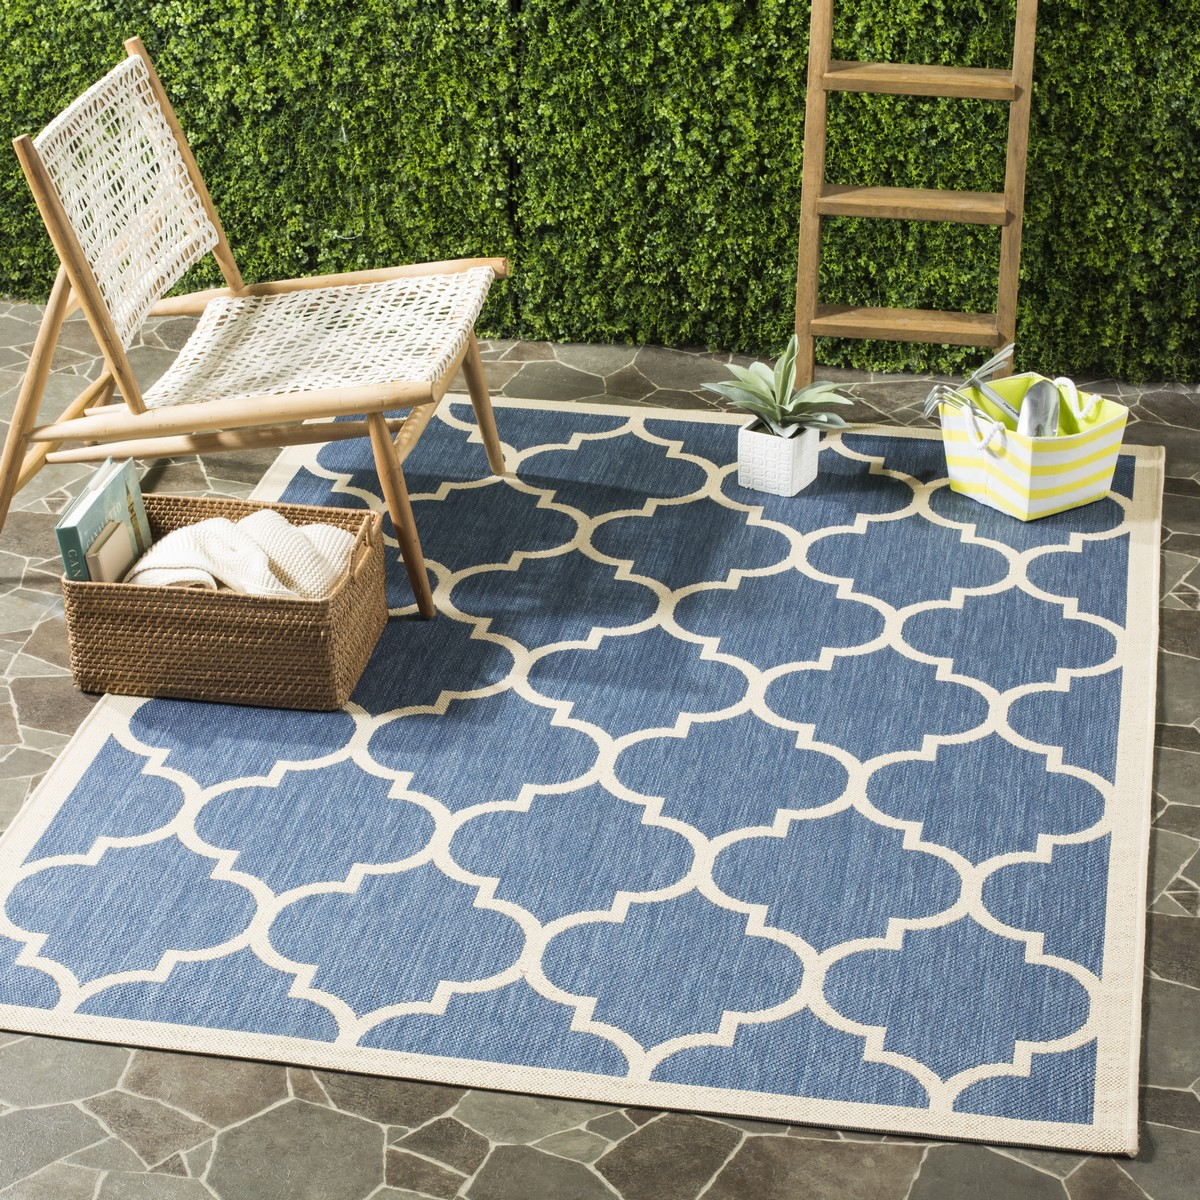 blue tile indoor outdoor rug. Black Bedroom Furniture Sets. Home Design Ideas